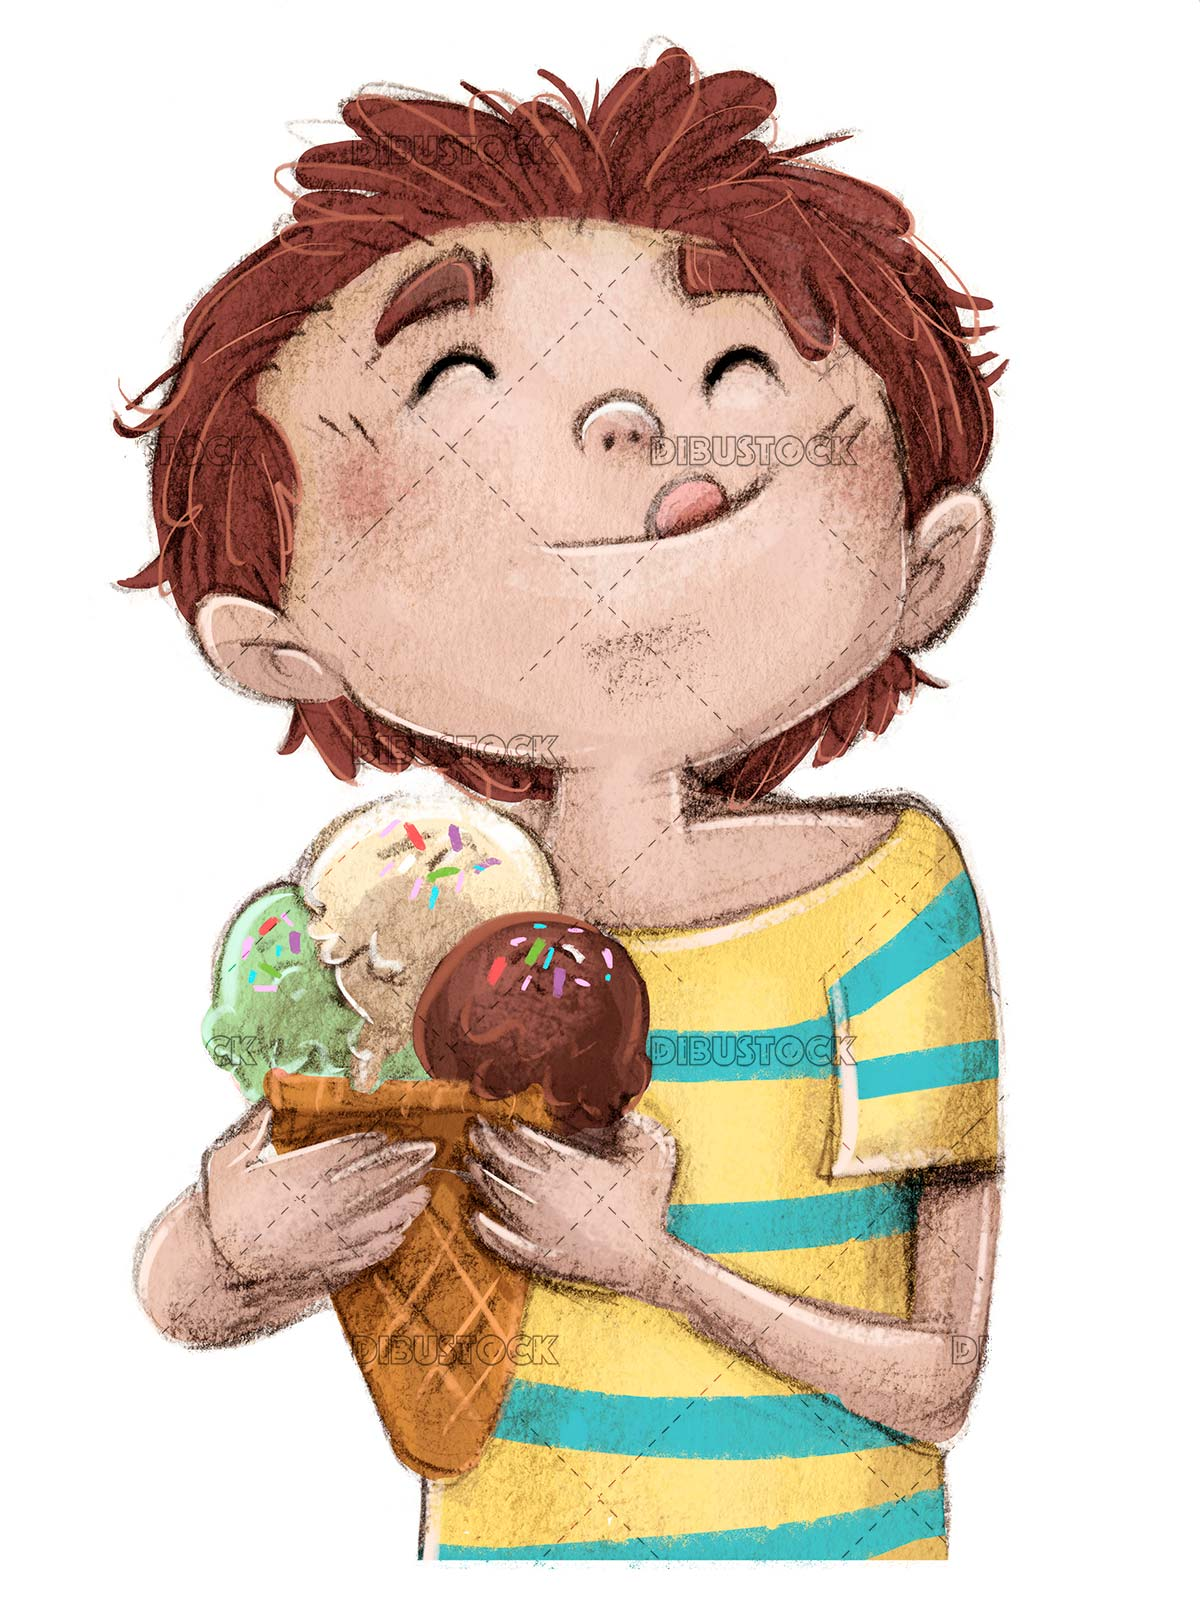 Child eating a cornet ice cream